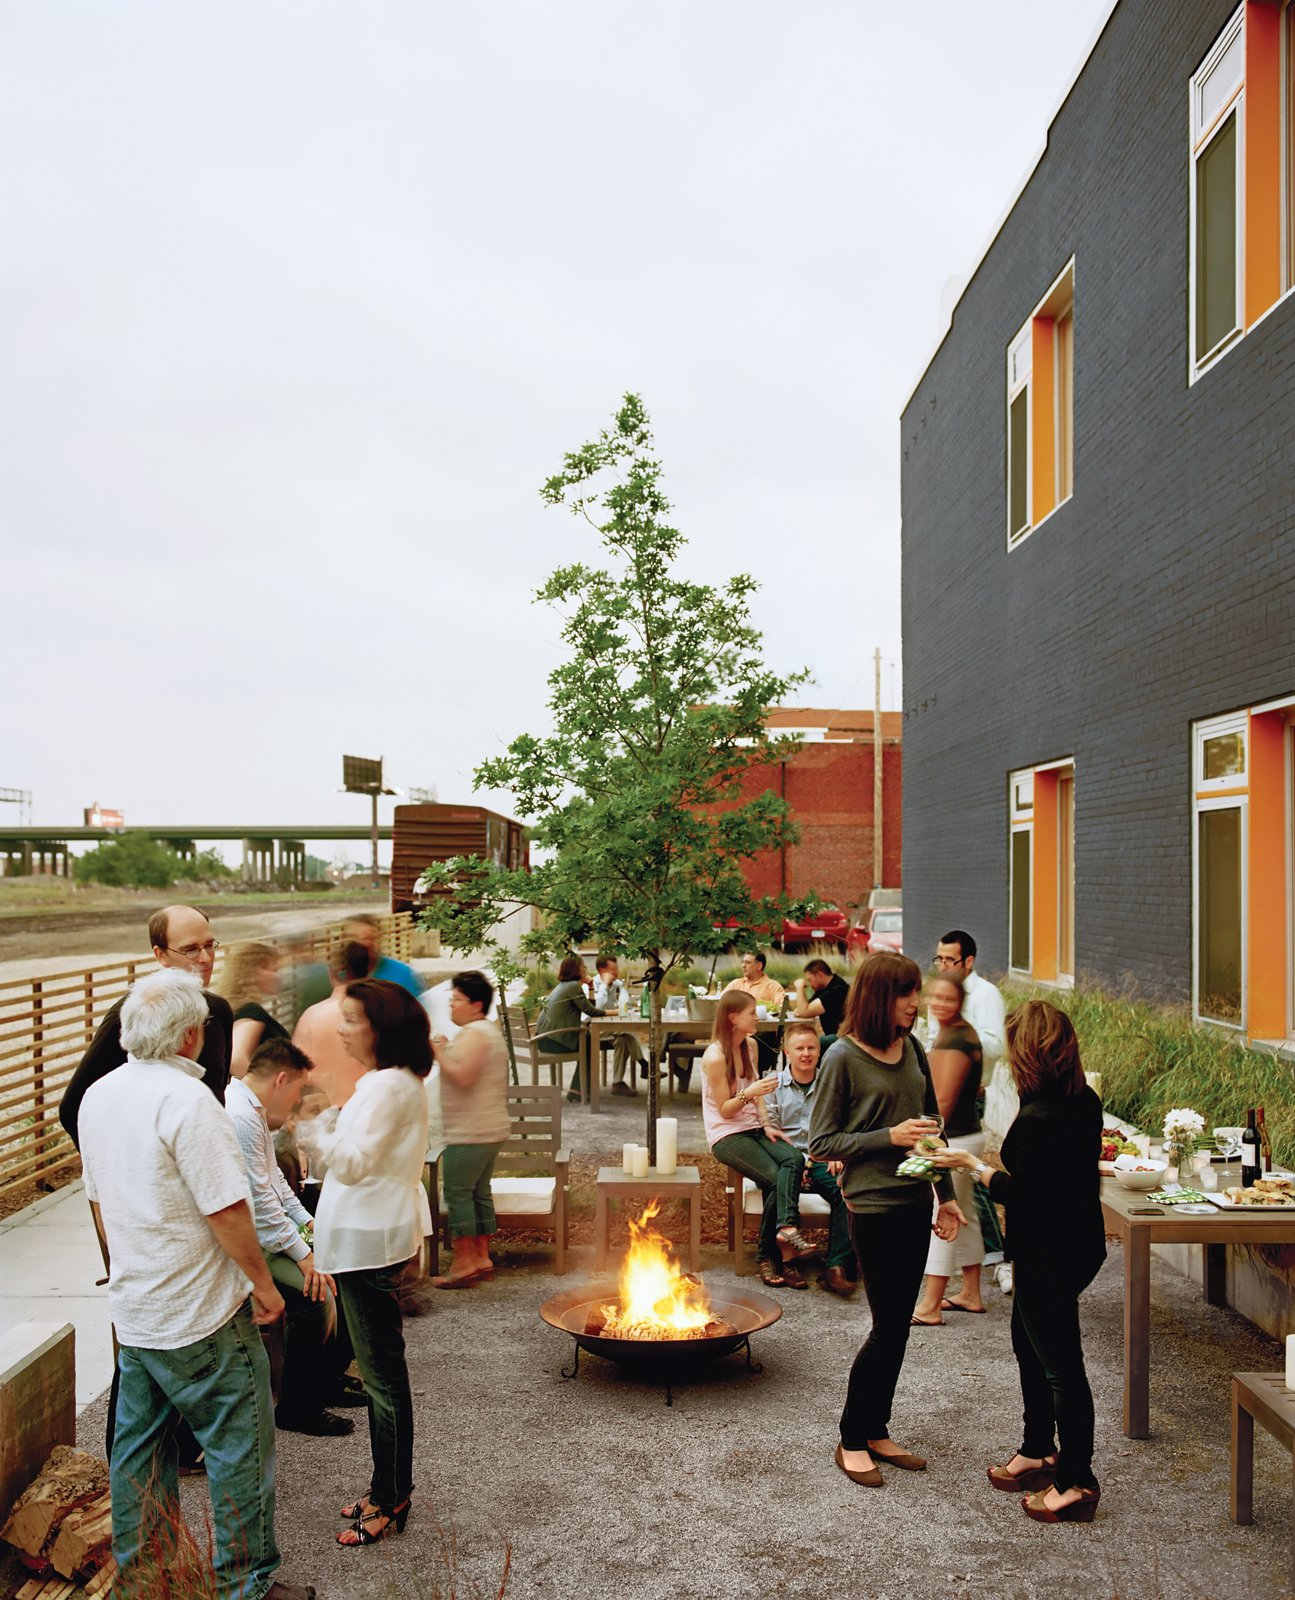 """Architect Douglas Stockman says the building's charcoal-and-orange exterior coloring was """"intended to reflect the dynamic character of the neighborhood."""" Here, it provides a festive backdrop to the residents' semi-annual Finn Lofts community party. Building Community - Photo 4 of 13"""